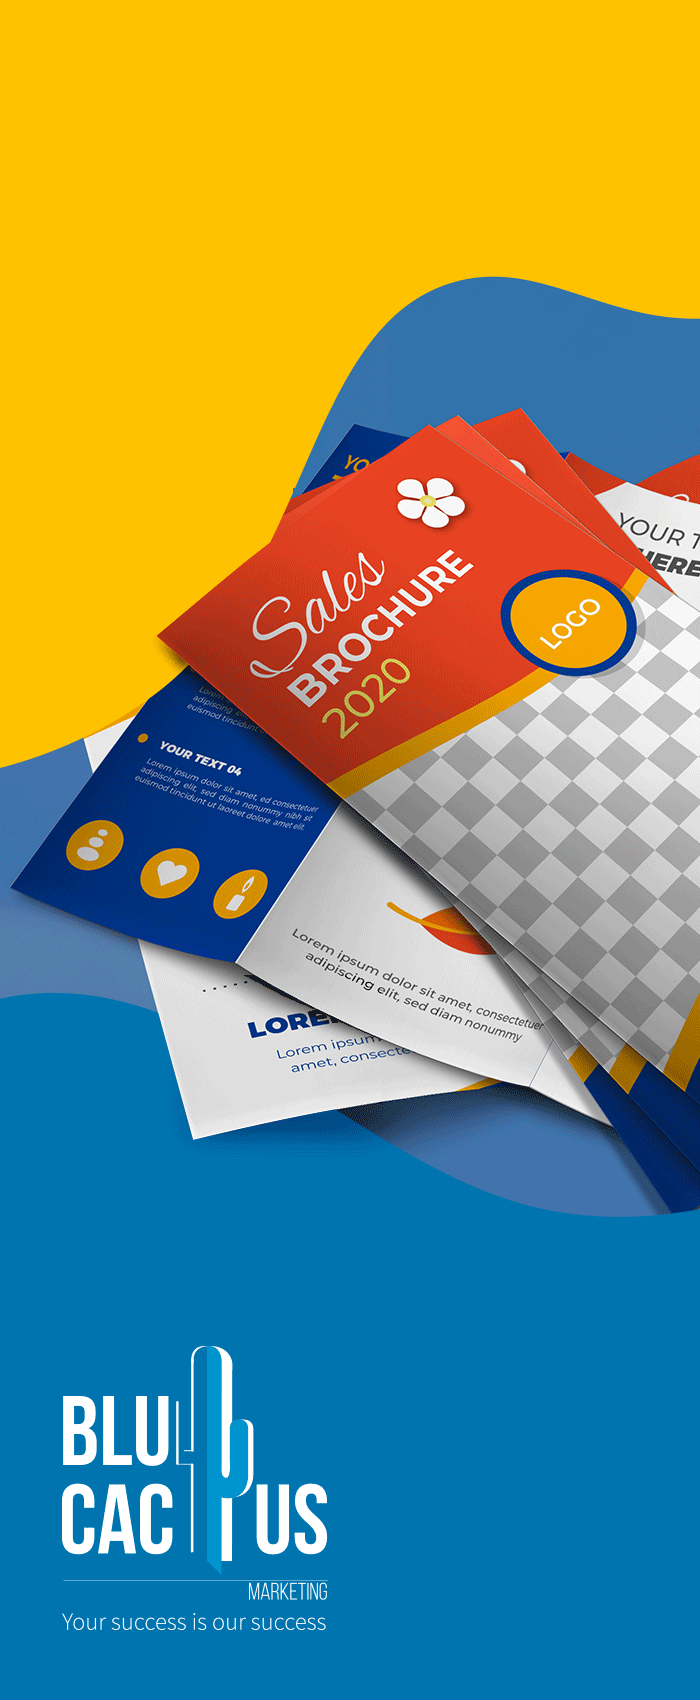 BluCactus The most popular Brochure Design format is the Trifold